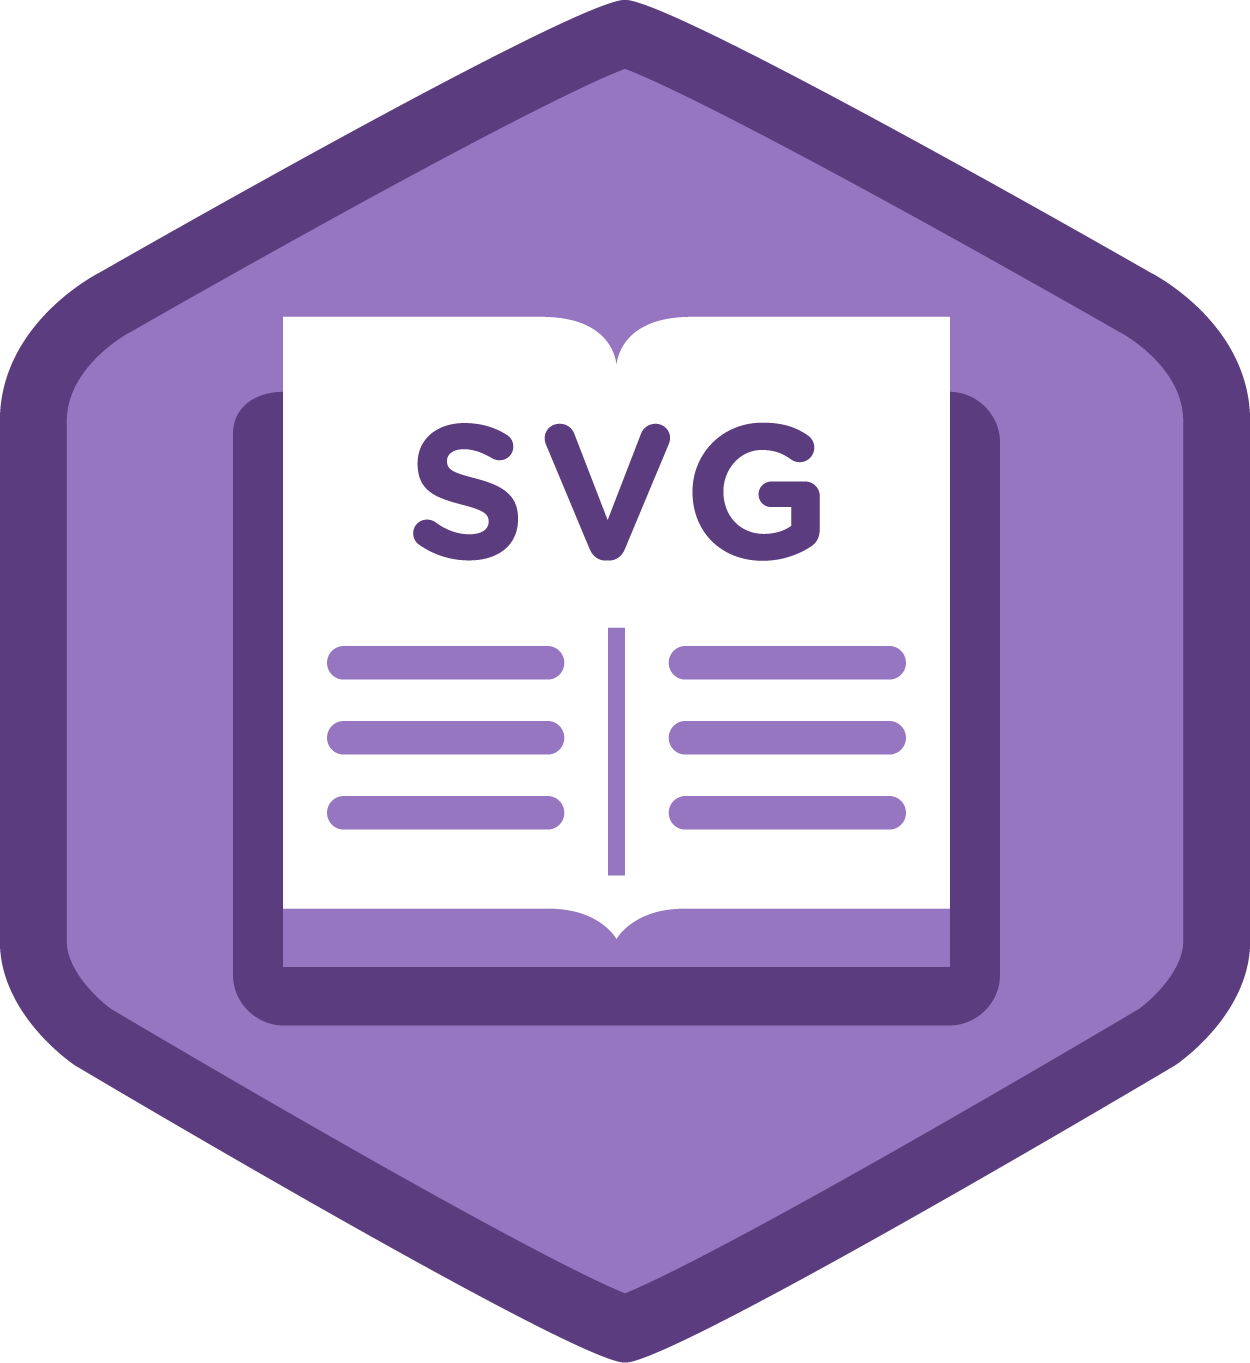 Introduction to SVG